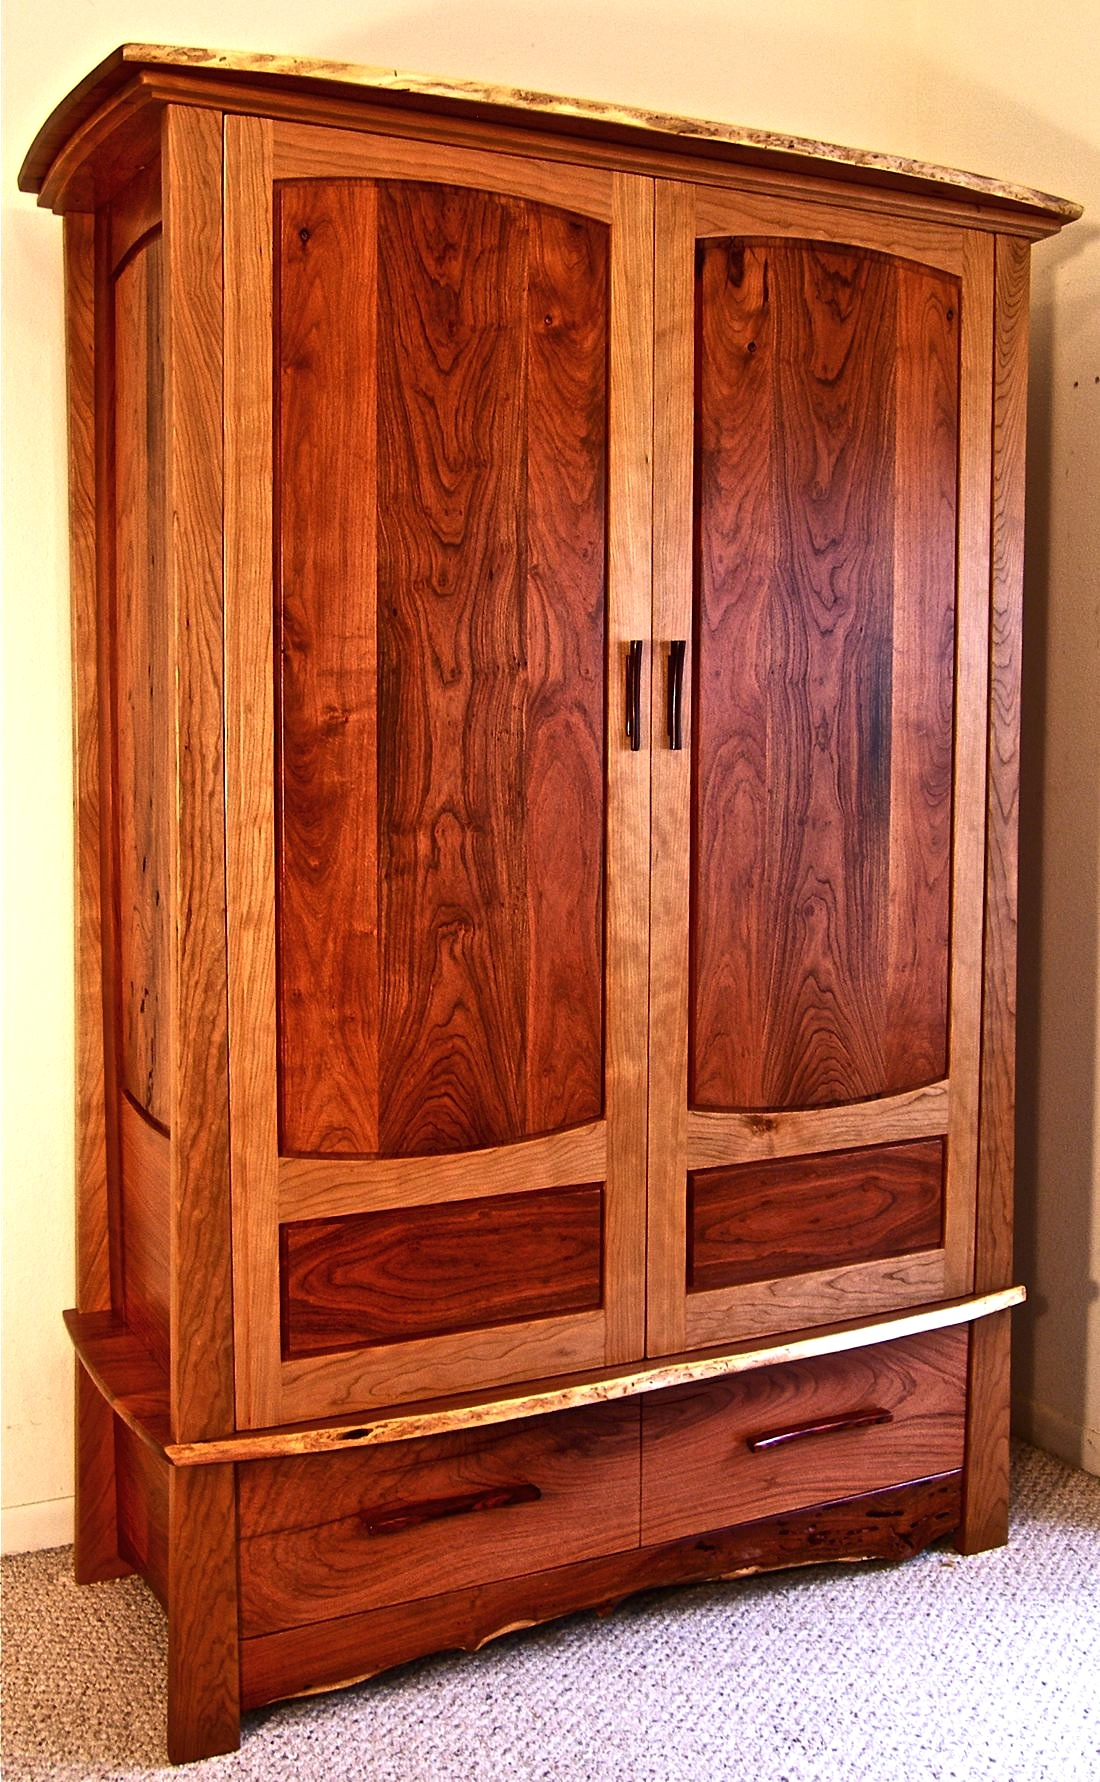 DIY Free Armoire Furniture Plans Wooden PDF baby furniture ...